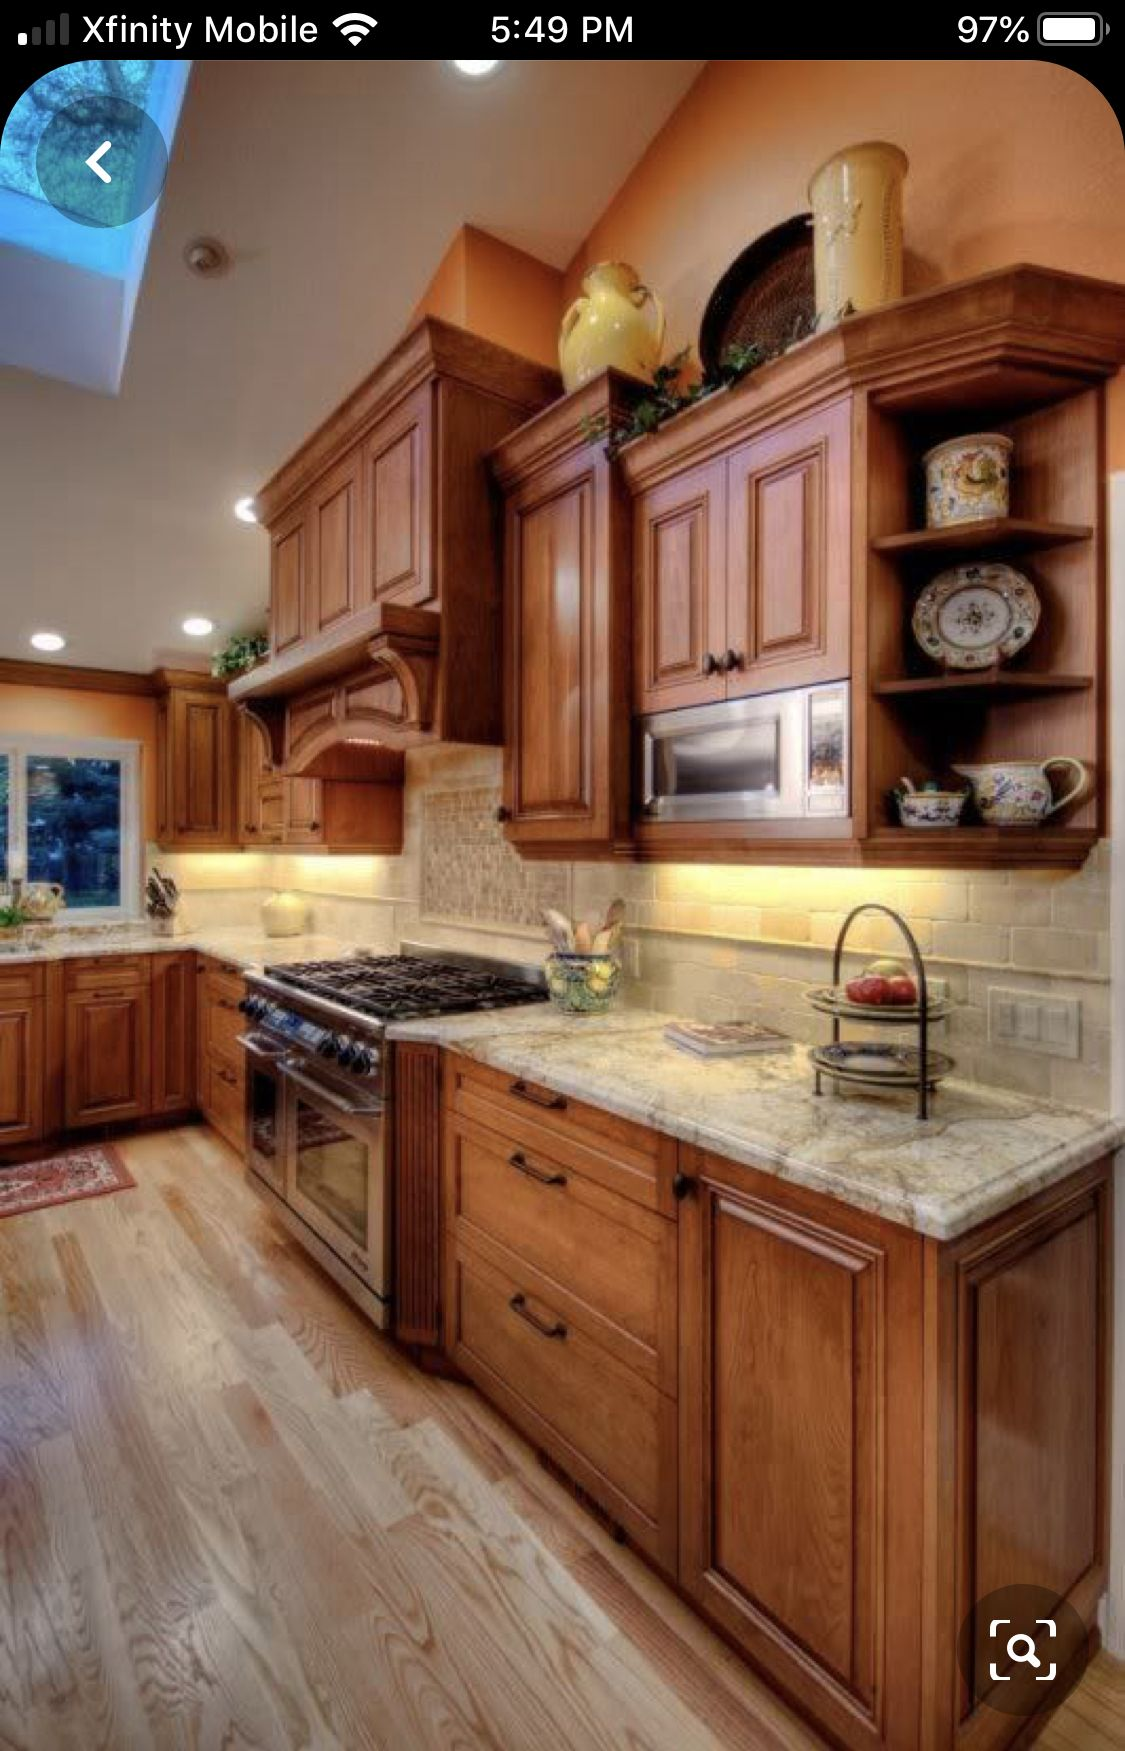 Pin by Norma Scacciante on Kitchen cabinets   Cherry cabinets ...